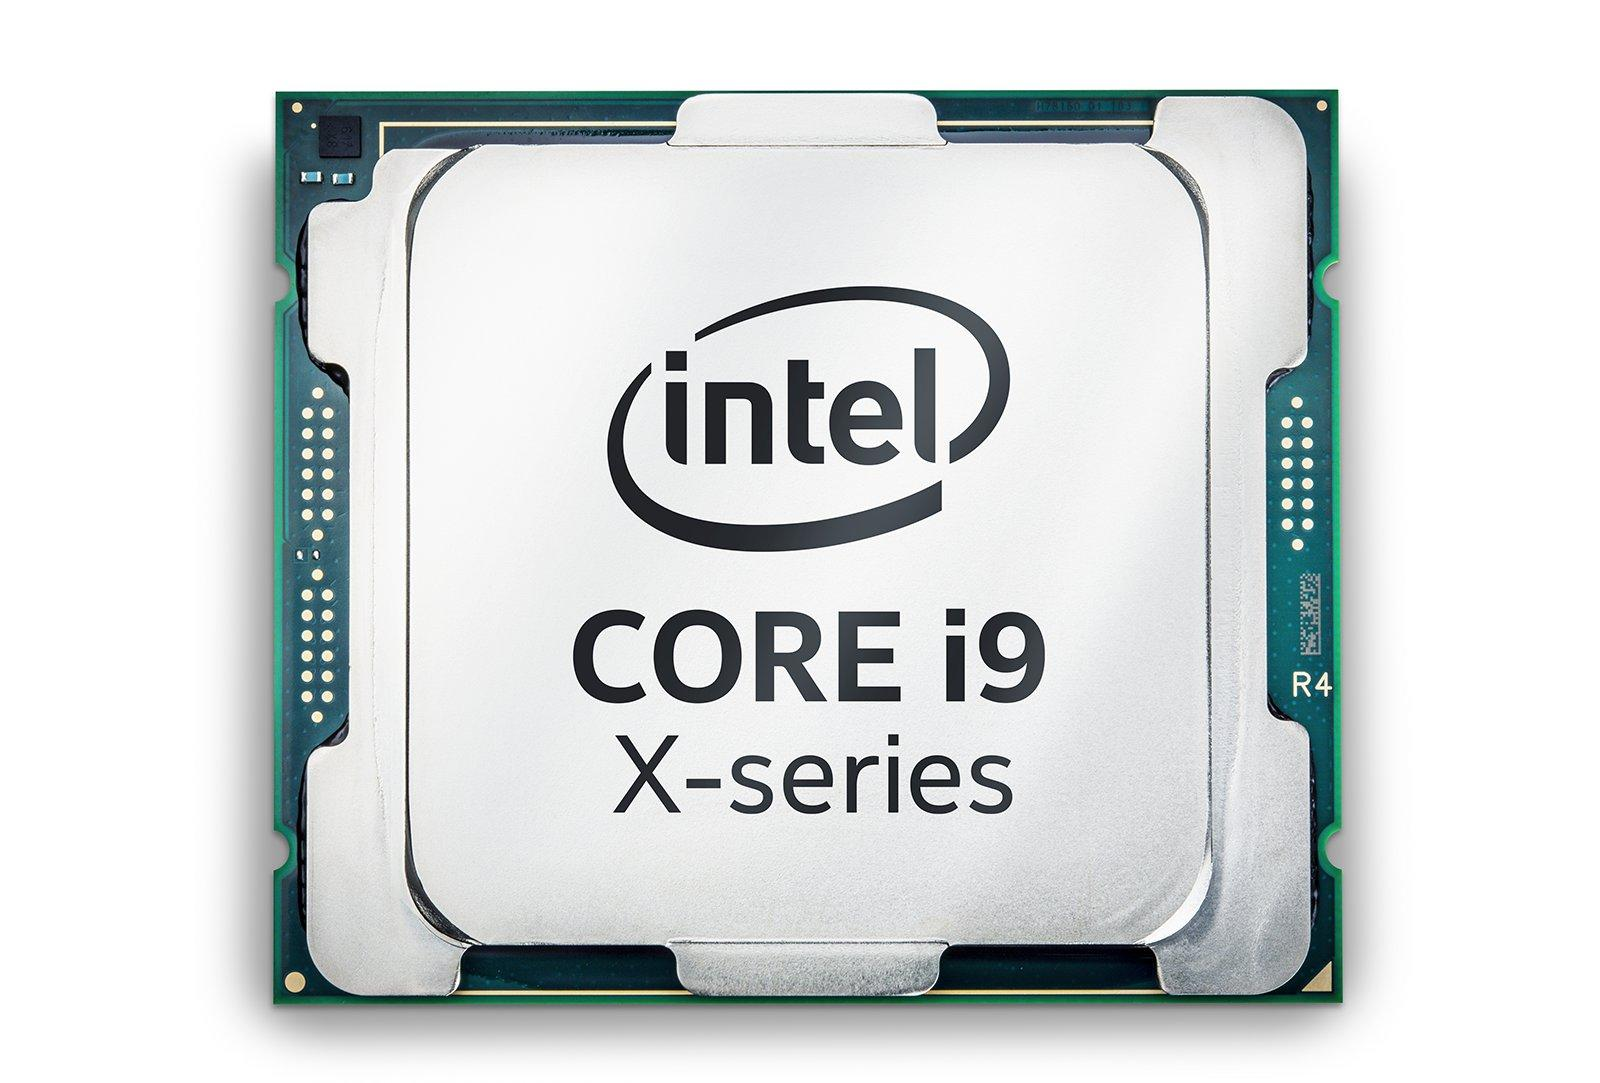 intelcorei9xseries